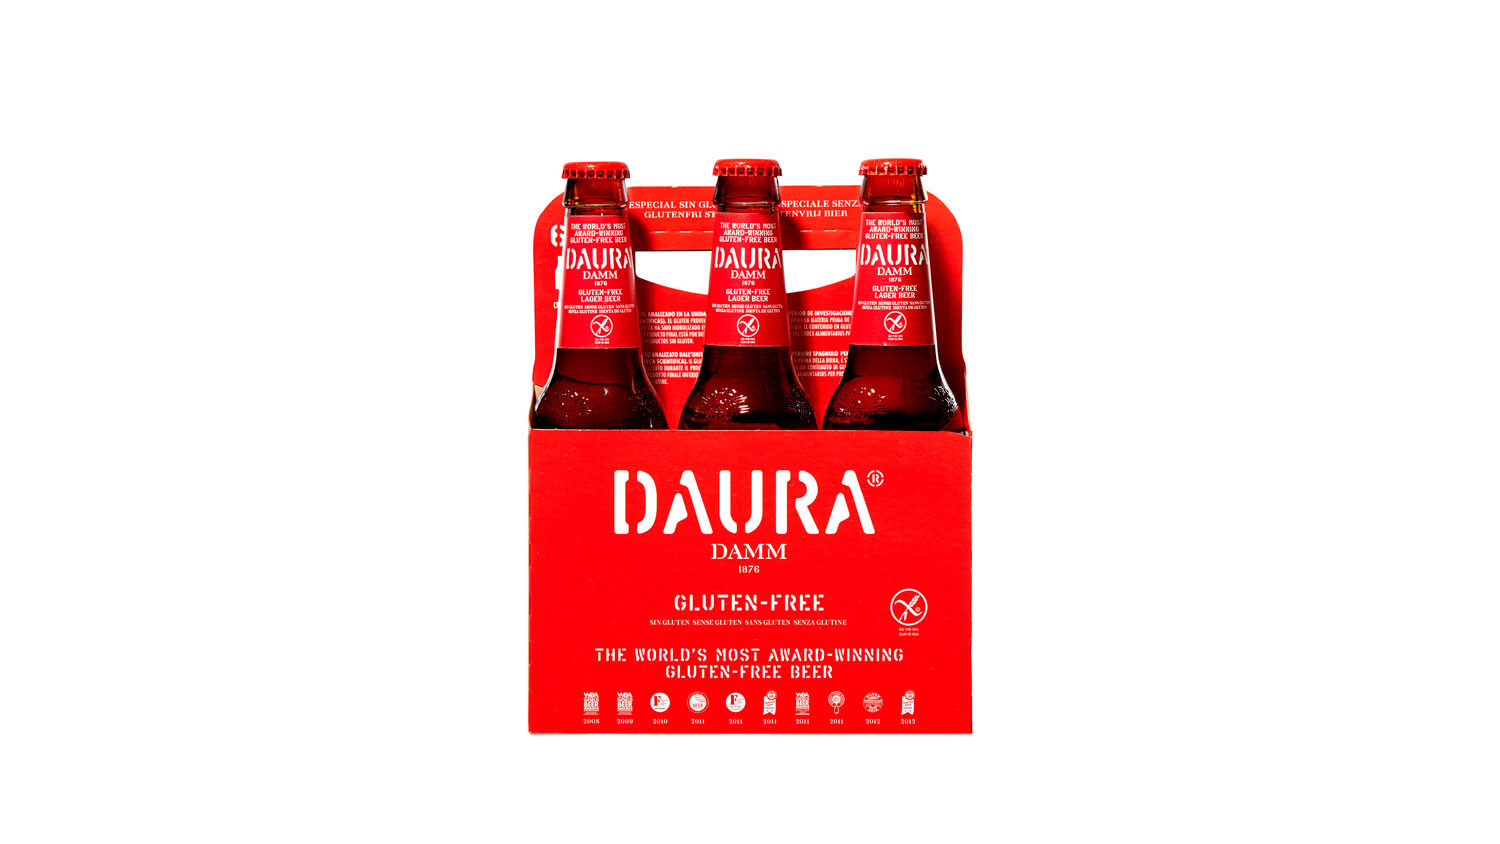 Mario Eskenazi, packaging DAURA